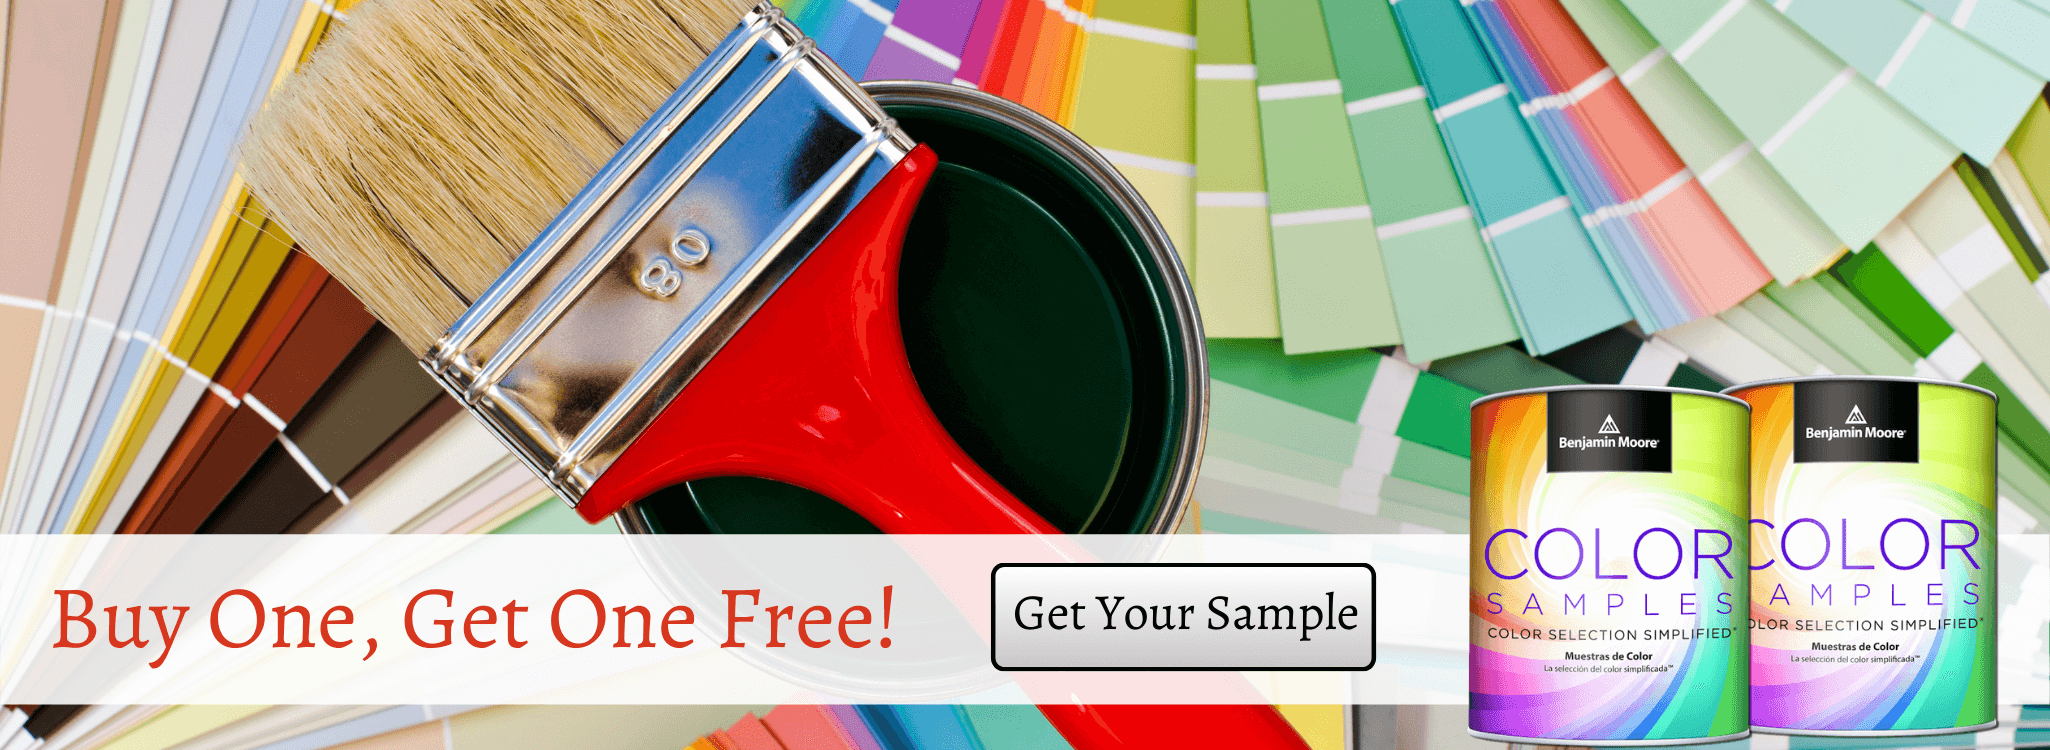 Buy One Get One FREE loconsolo paints